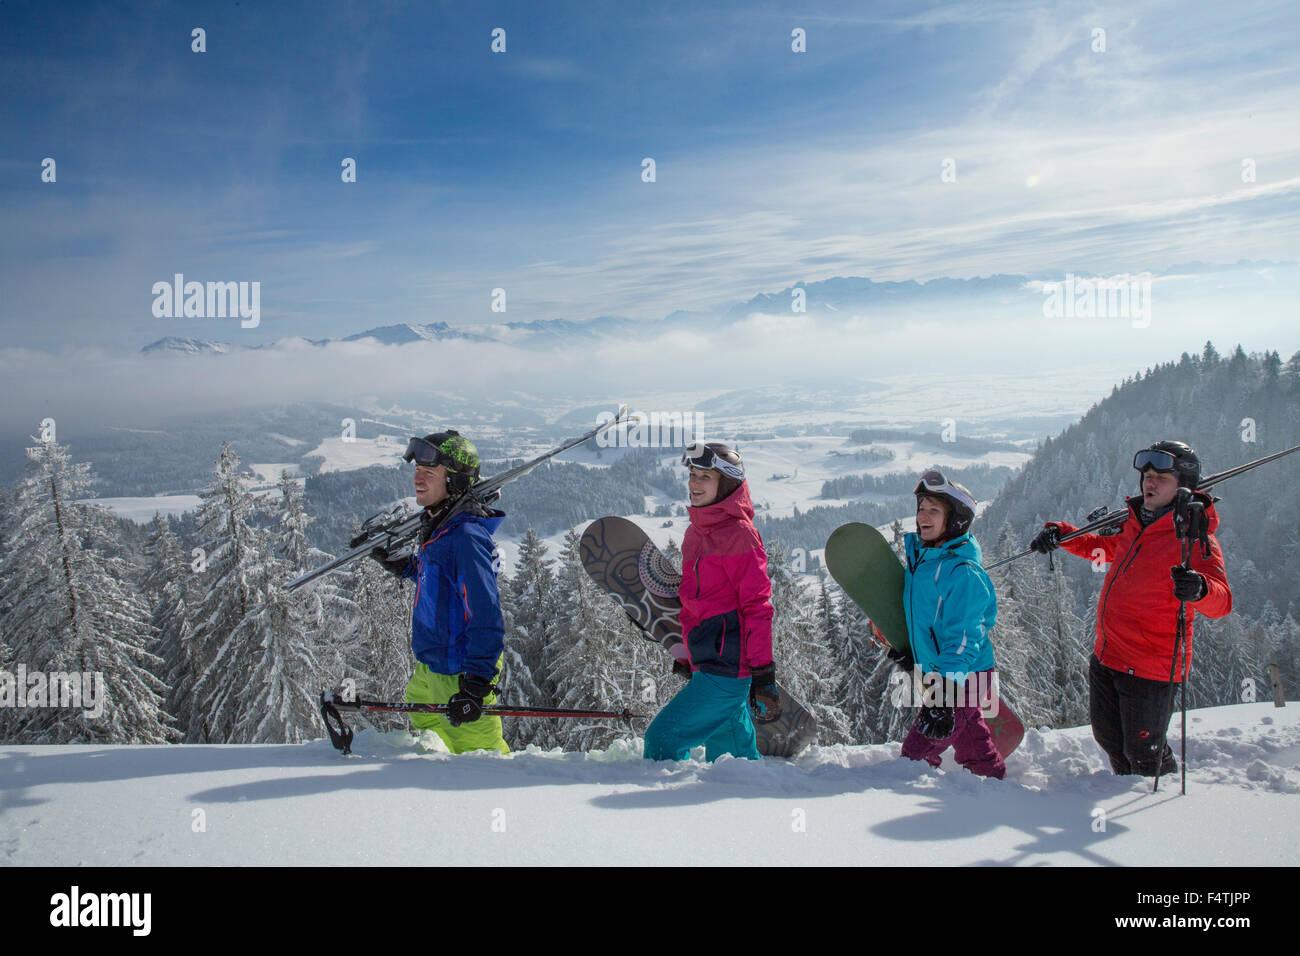 Winter sports in Atzmännig - Stock Image